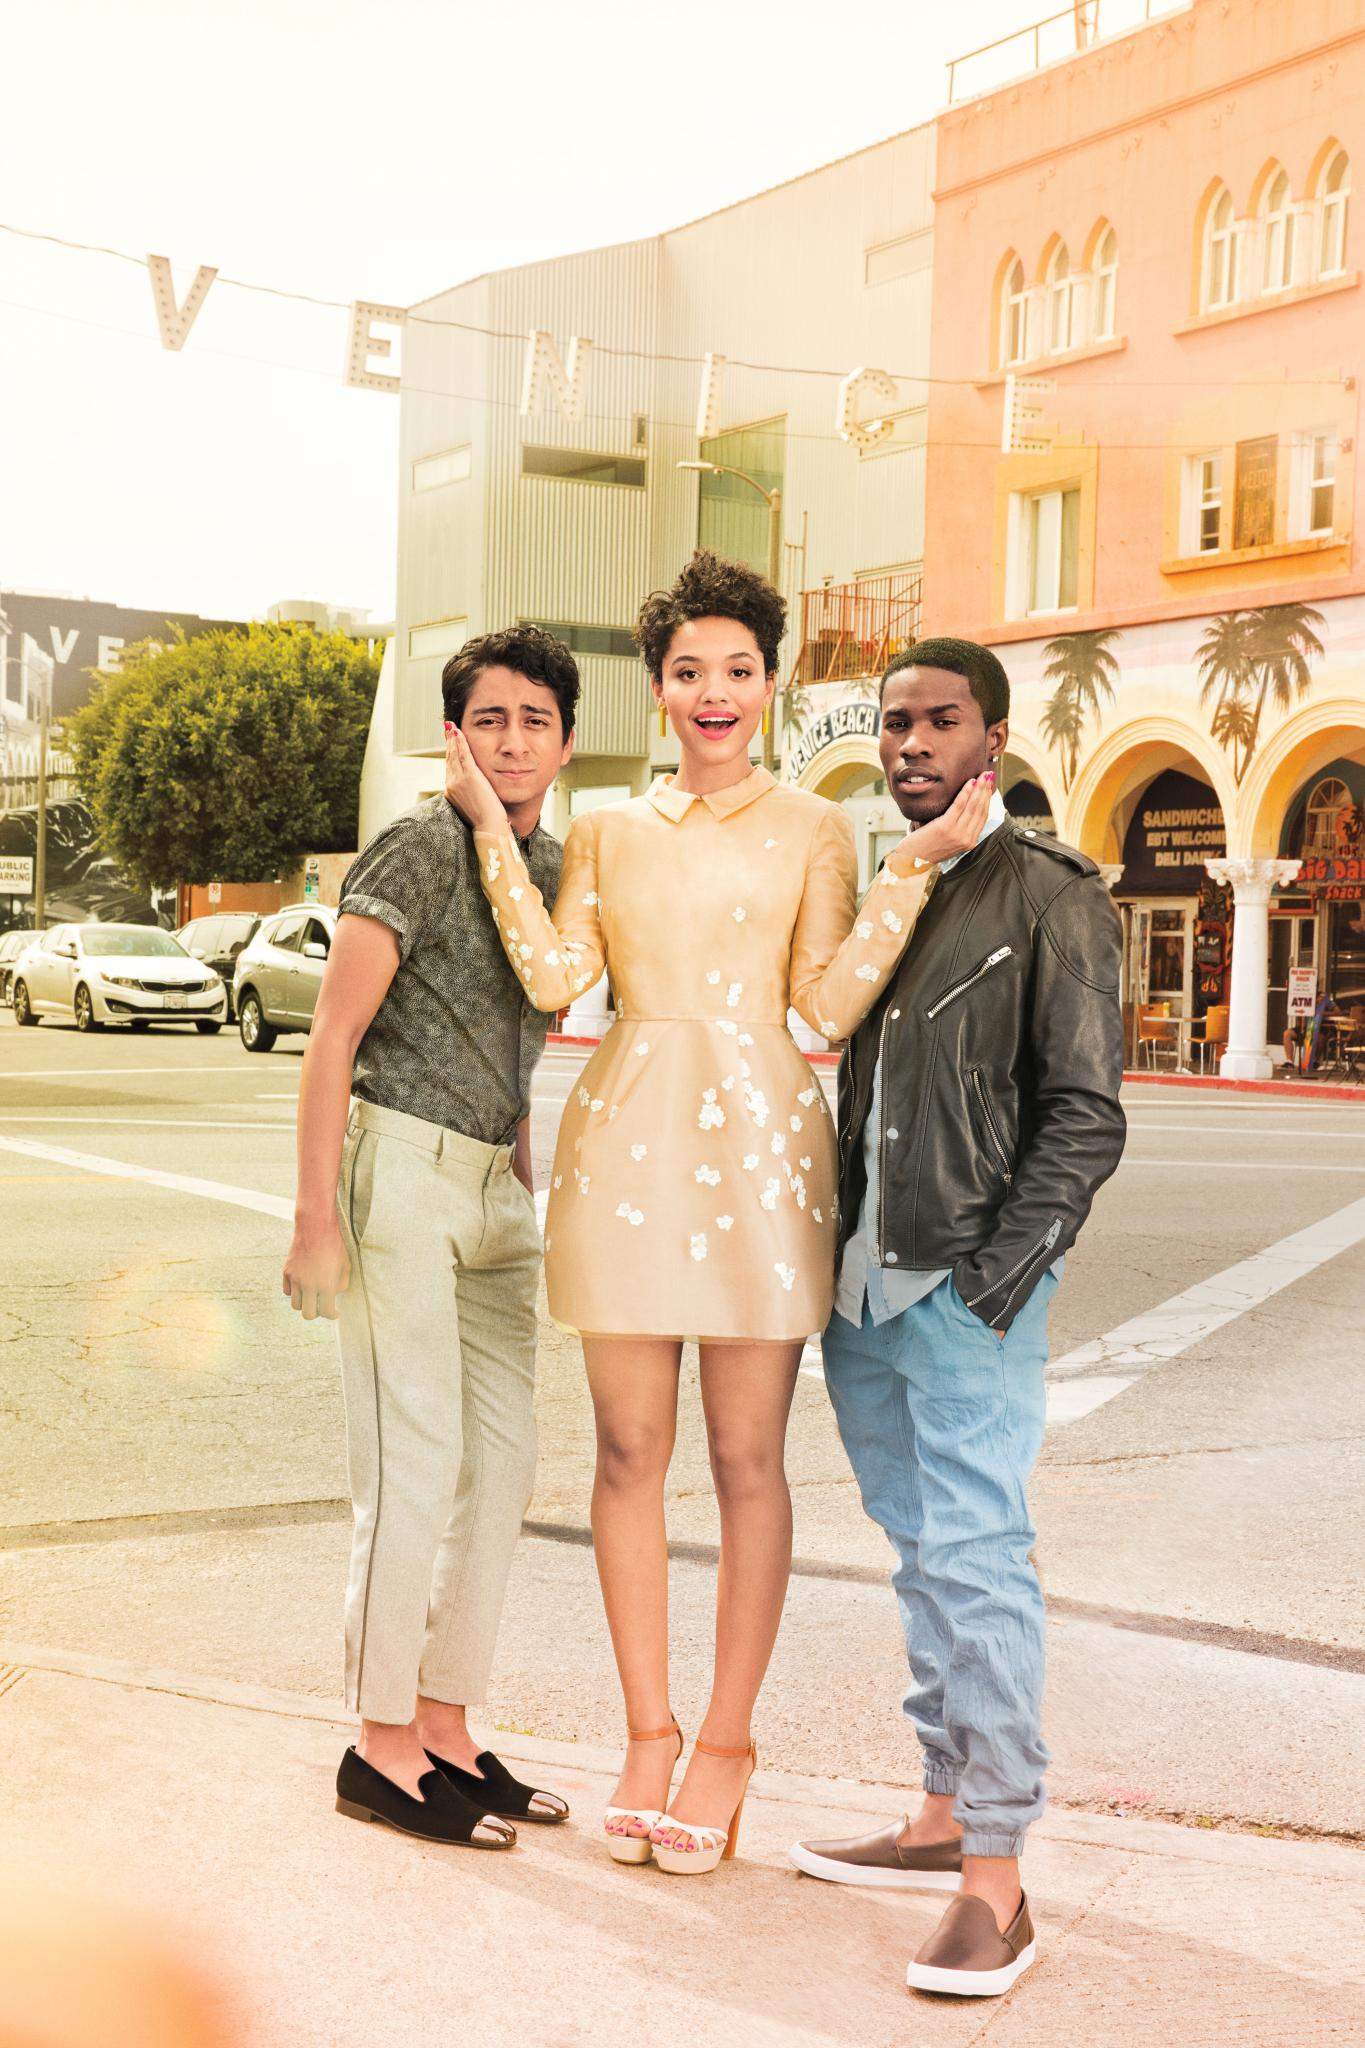 Meet The Cool Kids of New Coming-Of-Age Film 'Dope'